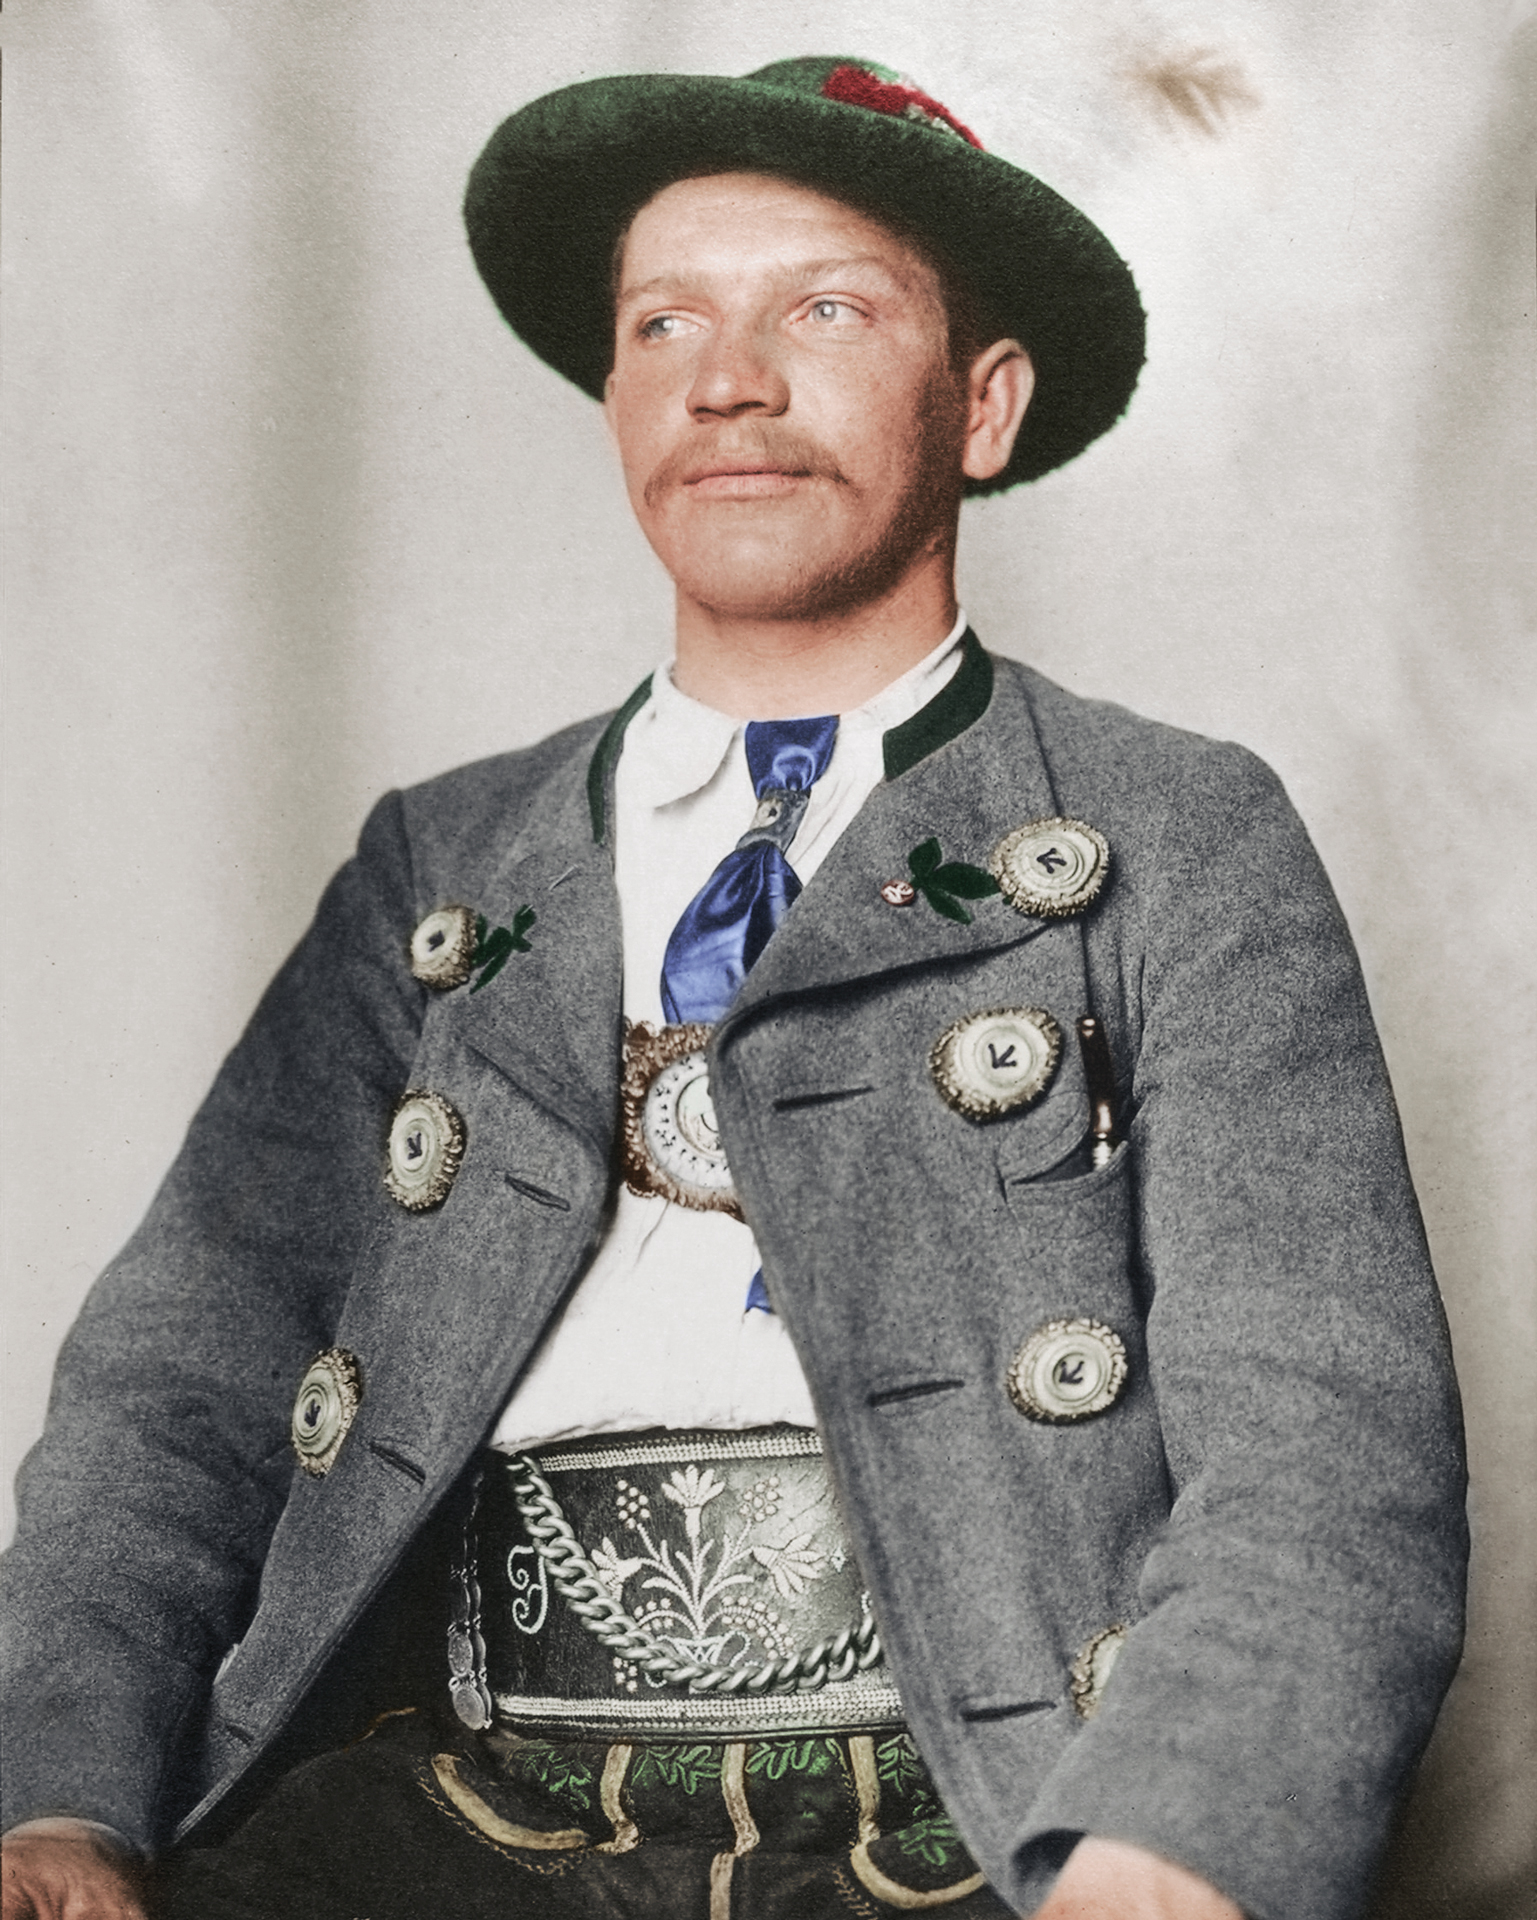 "c. 1910 ""Bavarian man."" The traditional dress of Germany is known as the trachten, like so many others has regional variations. In the alpine regions of Germany like Bavaria, leather breeches known as Lederhosen were worn regularly by rural folk, though in modern day Germany, most people associate the garment with the annual Oktoberfest. The grey jacket, known as a trachtenjanker is made from fulled wool and decorated with horn buttons, often used by hunters in the region."